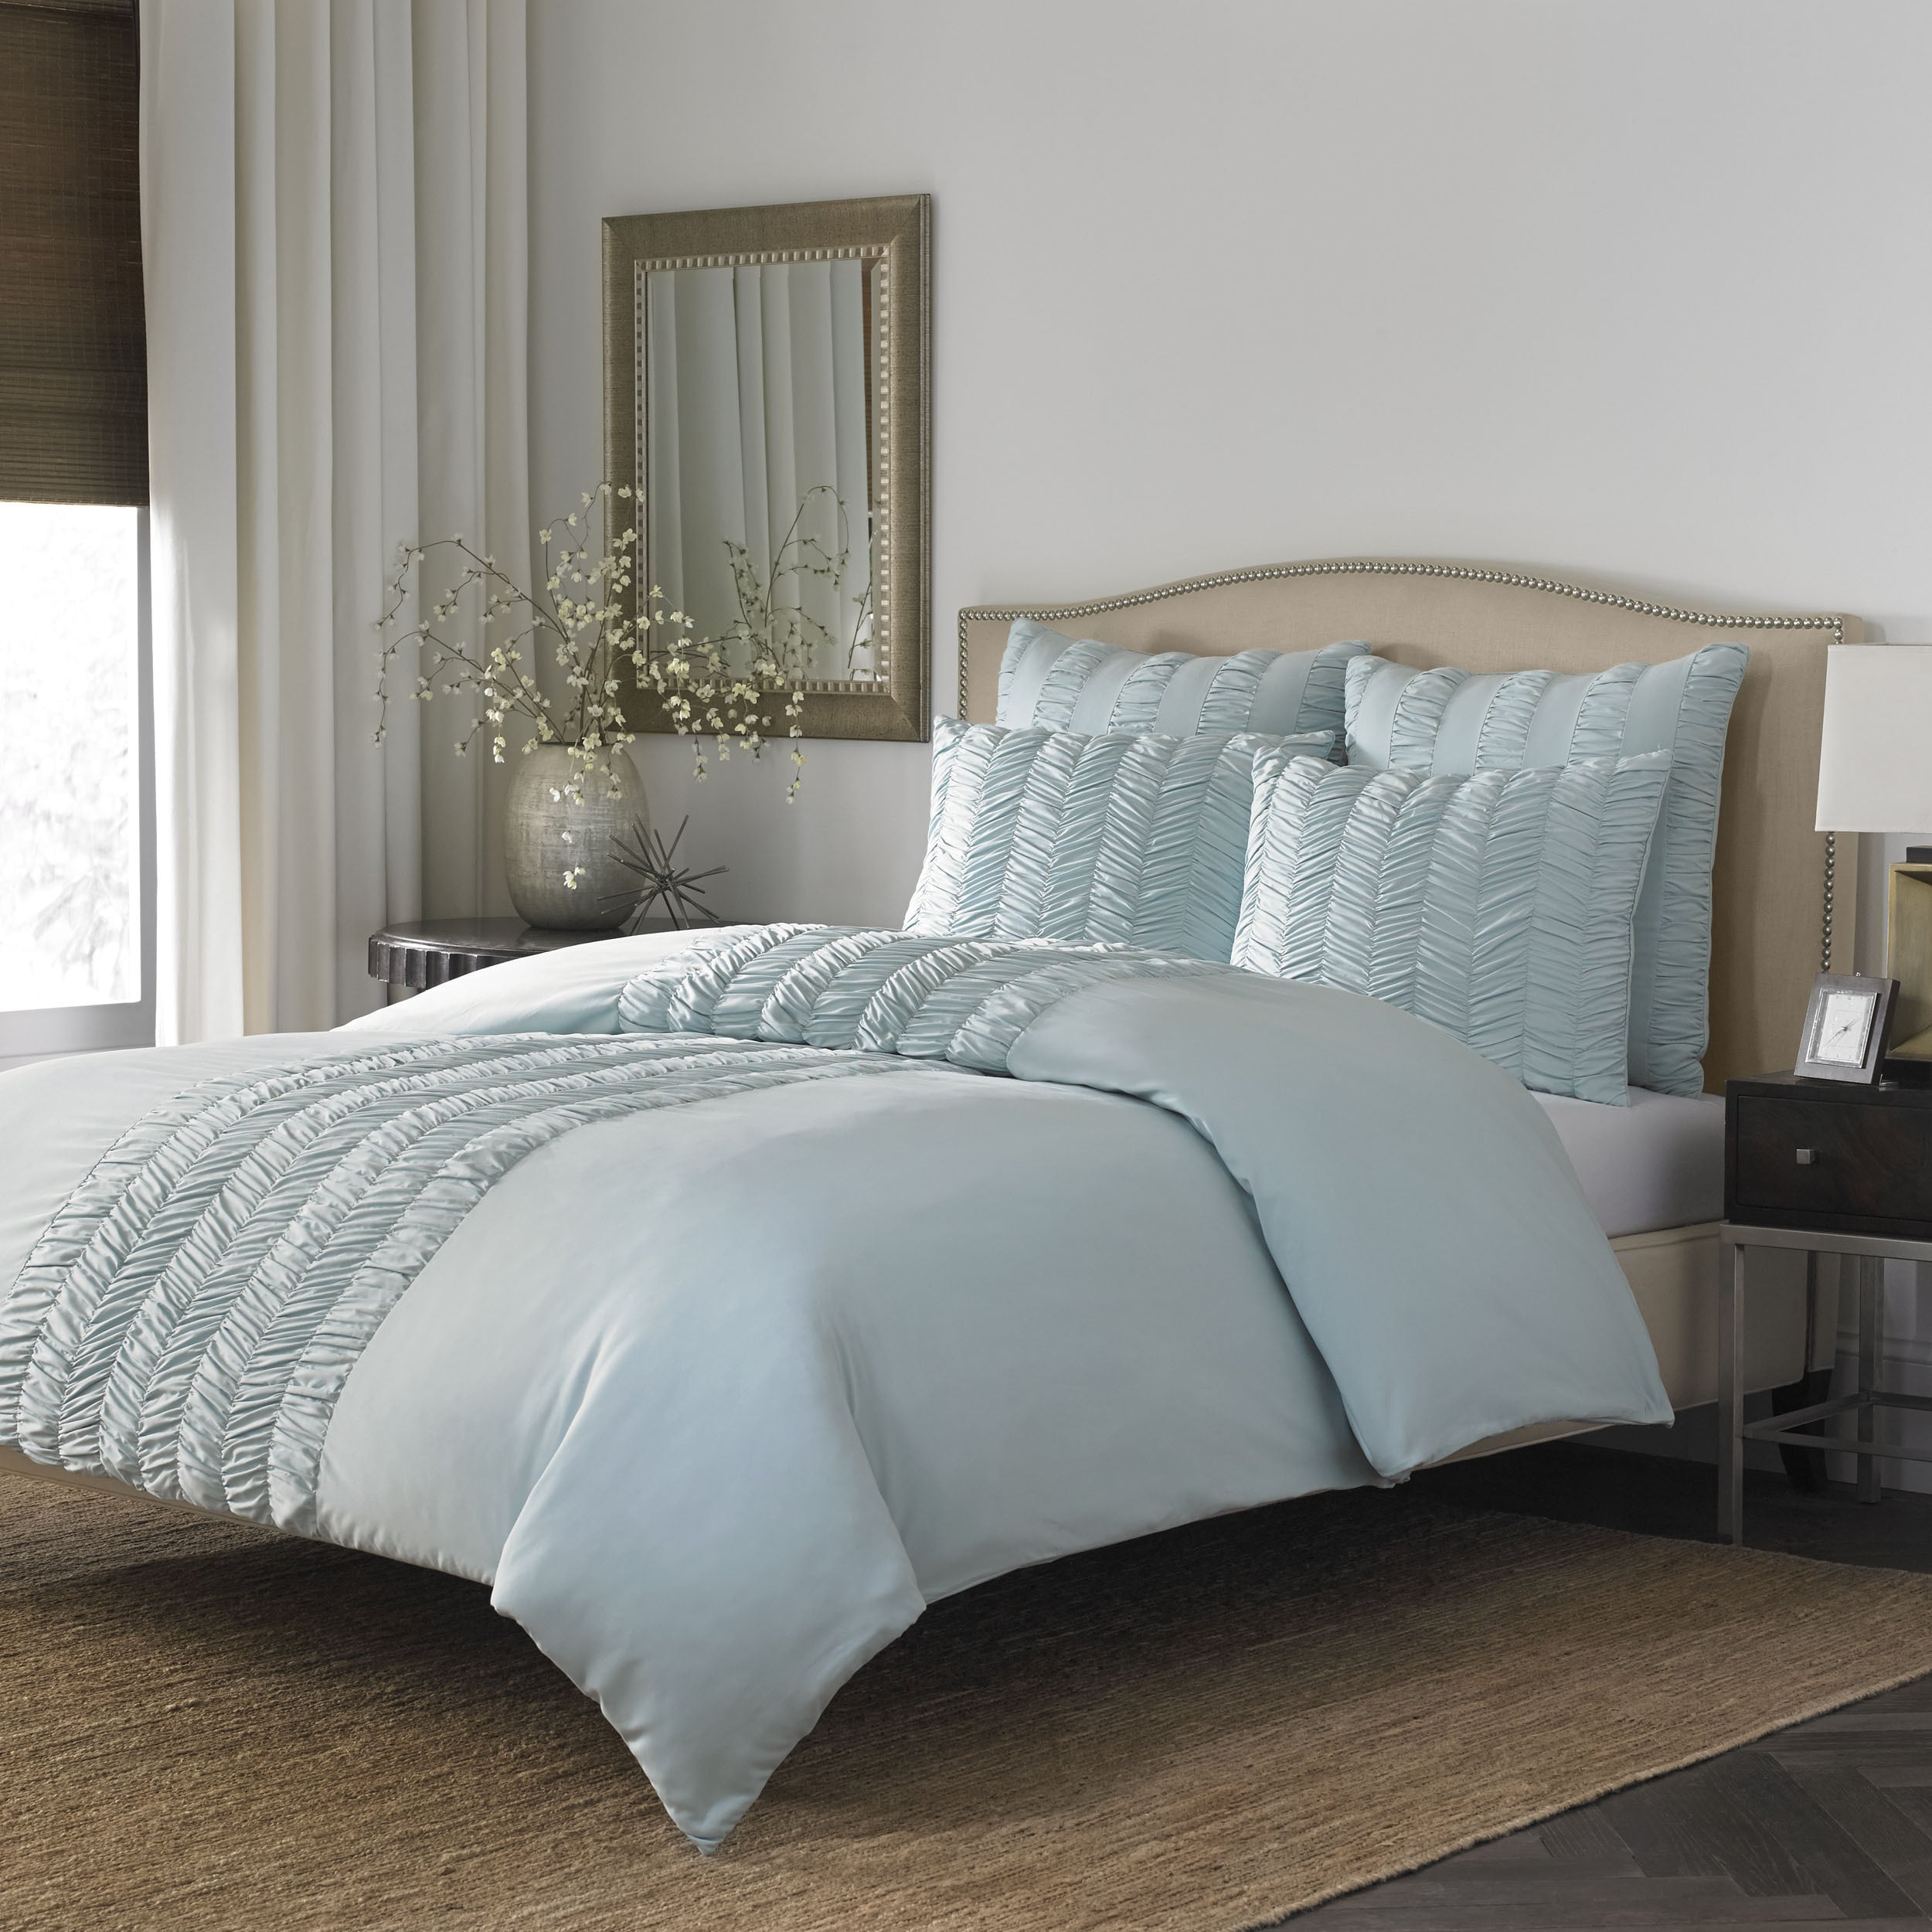 stone bedding magical king amazon blue thinking medallion target cottage ophelia comforter